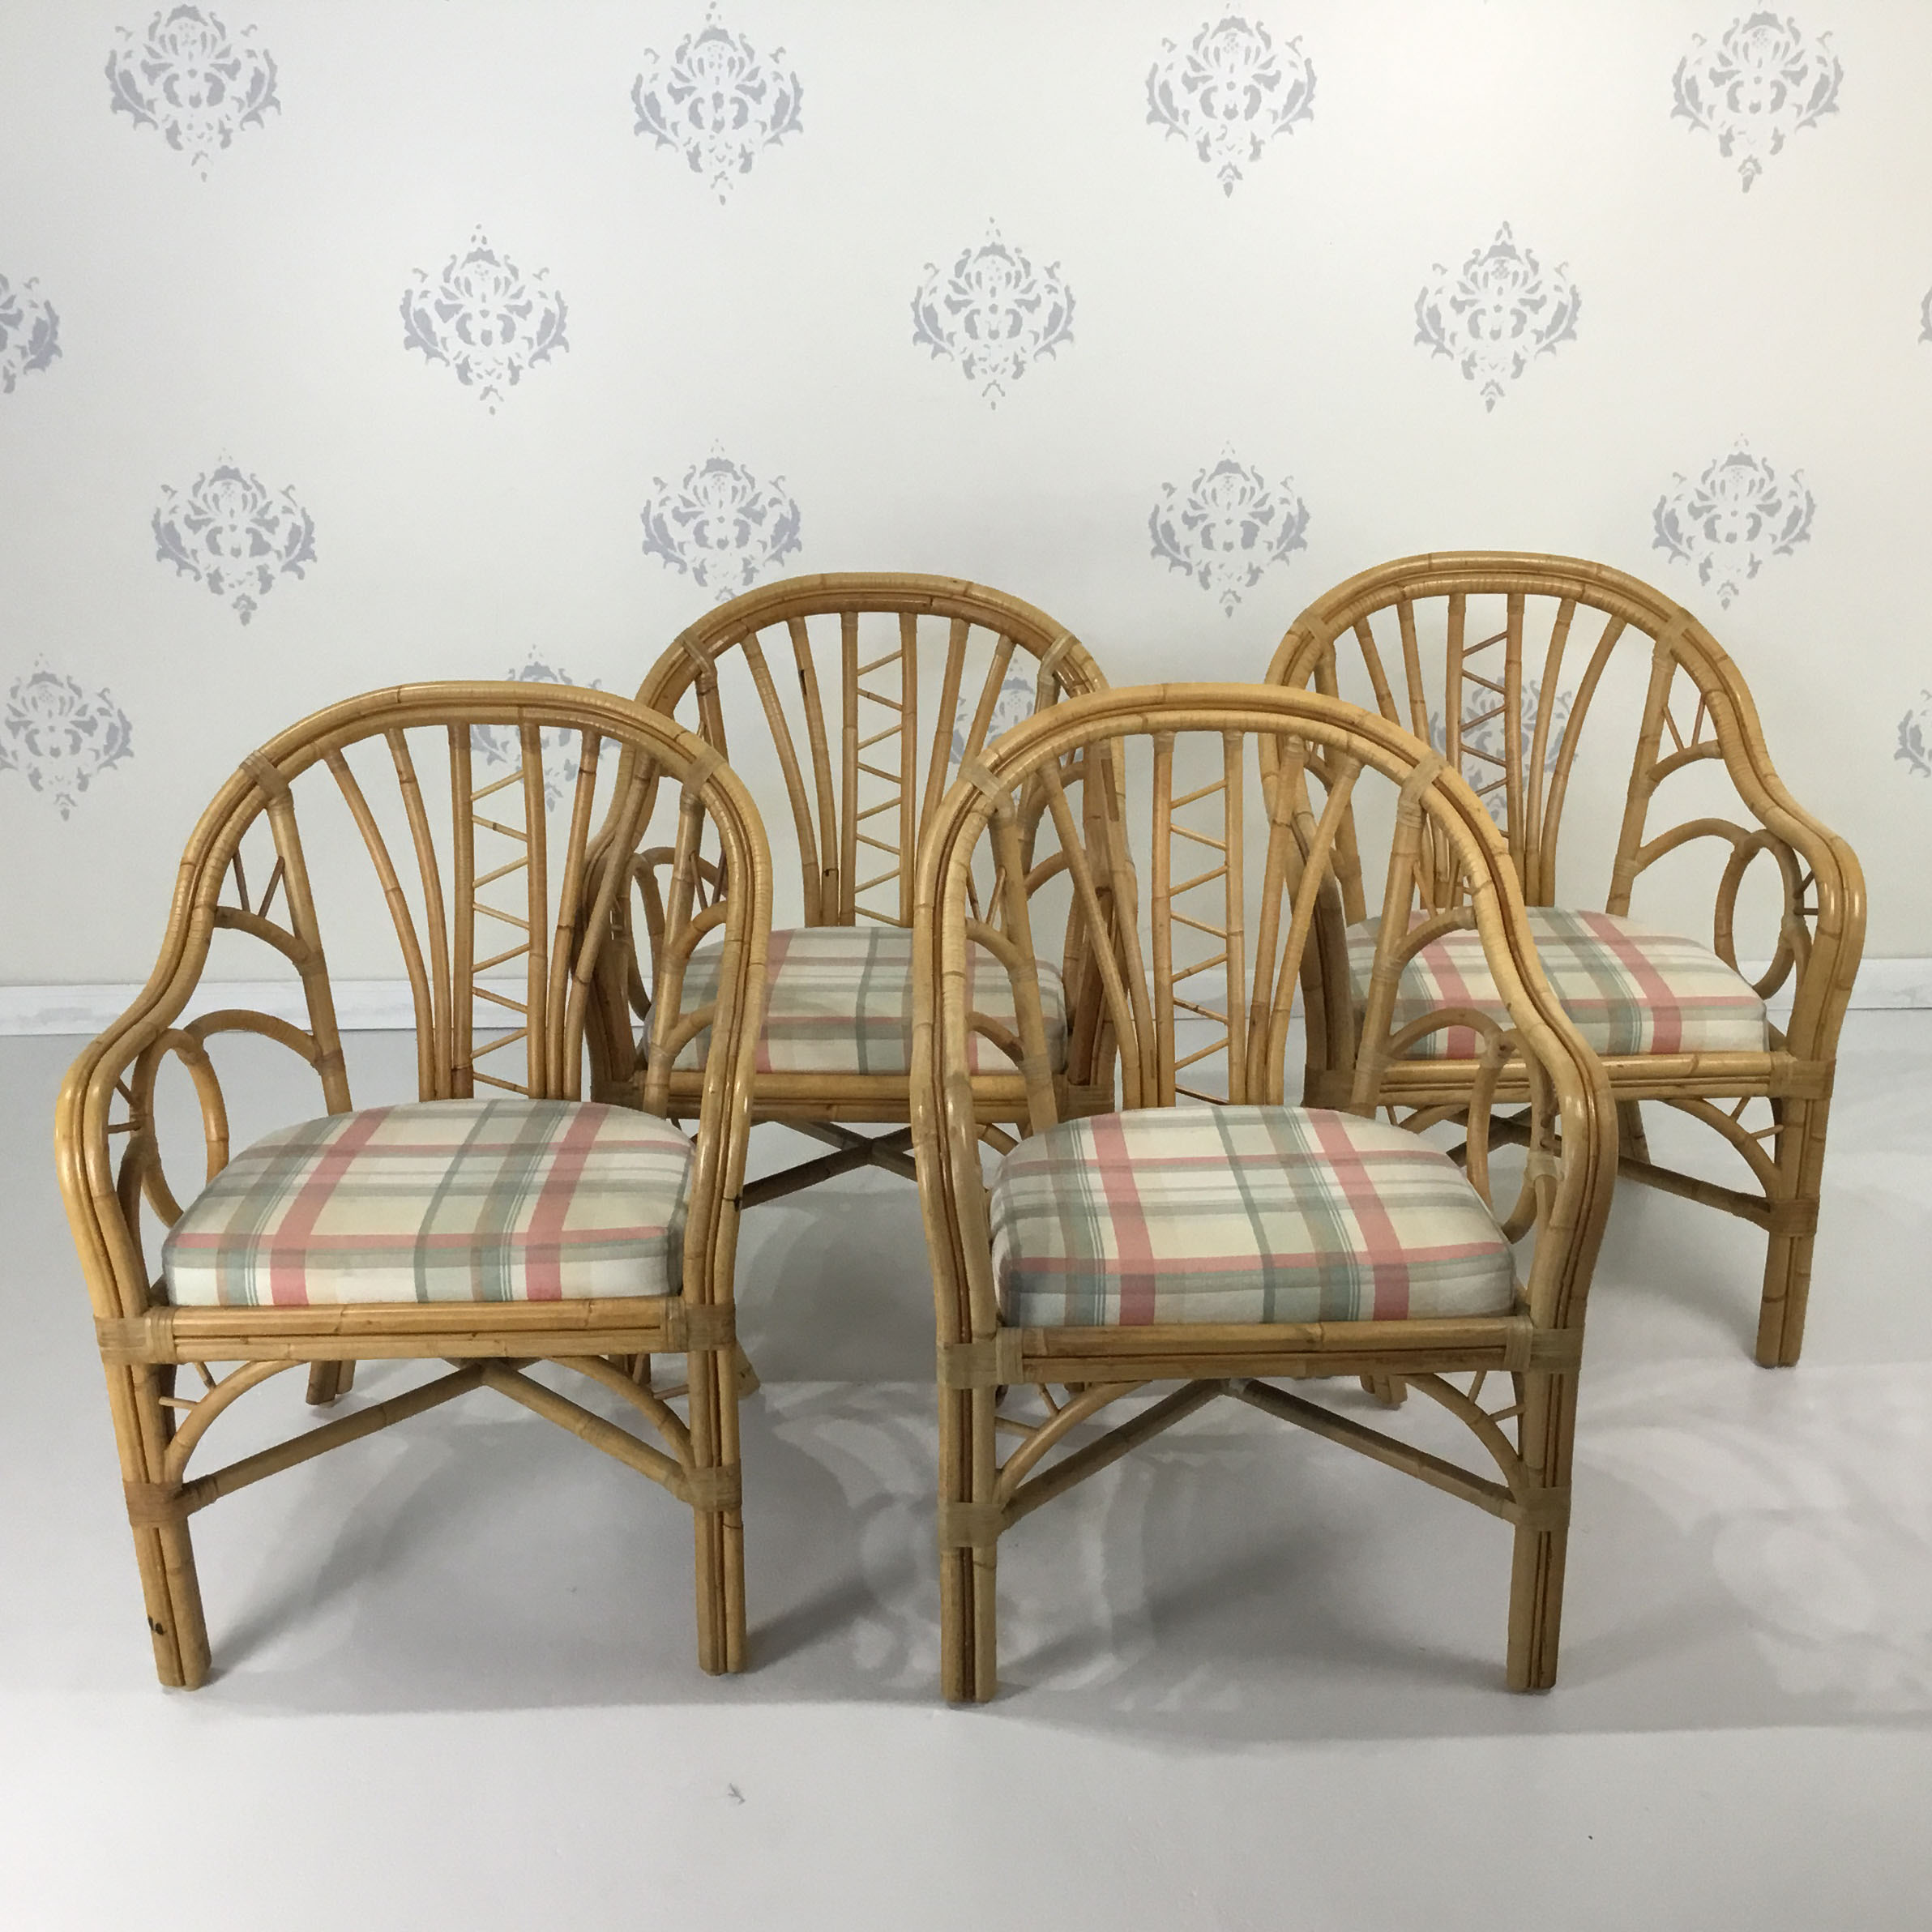 Bamboo Chairs Set Of 4 Rattan Bamboo Chairs